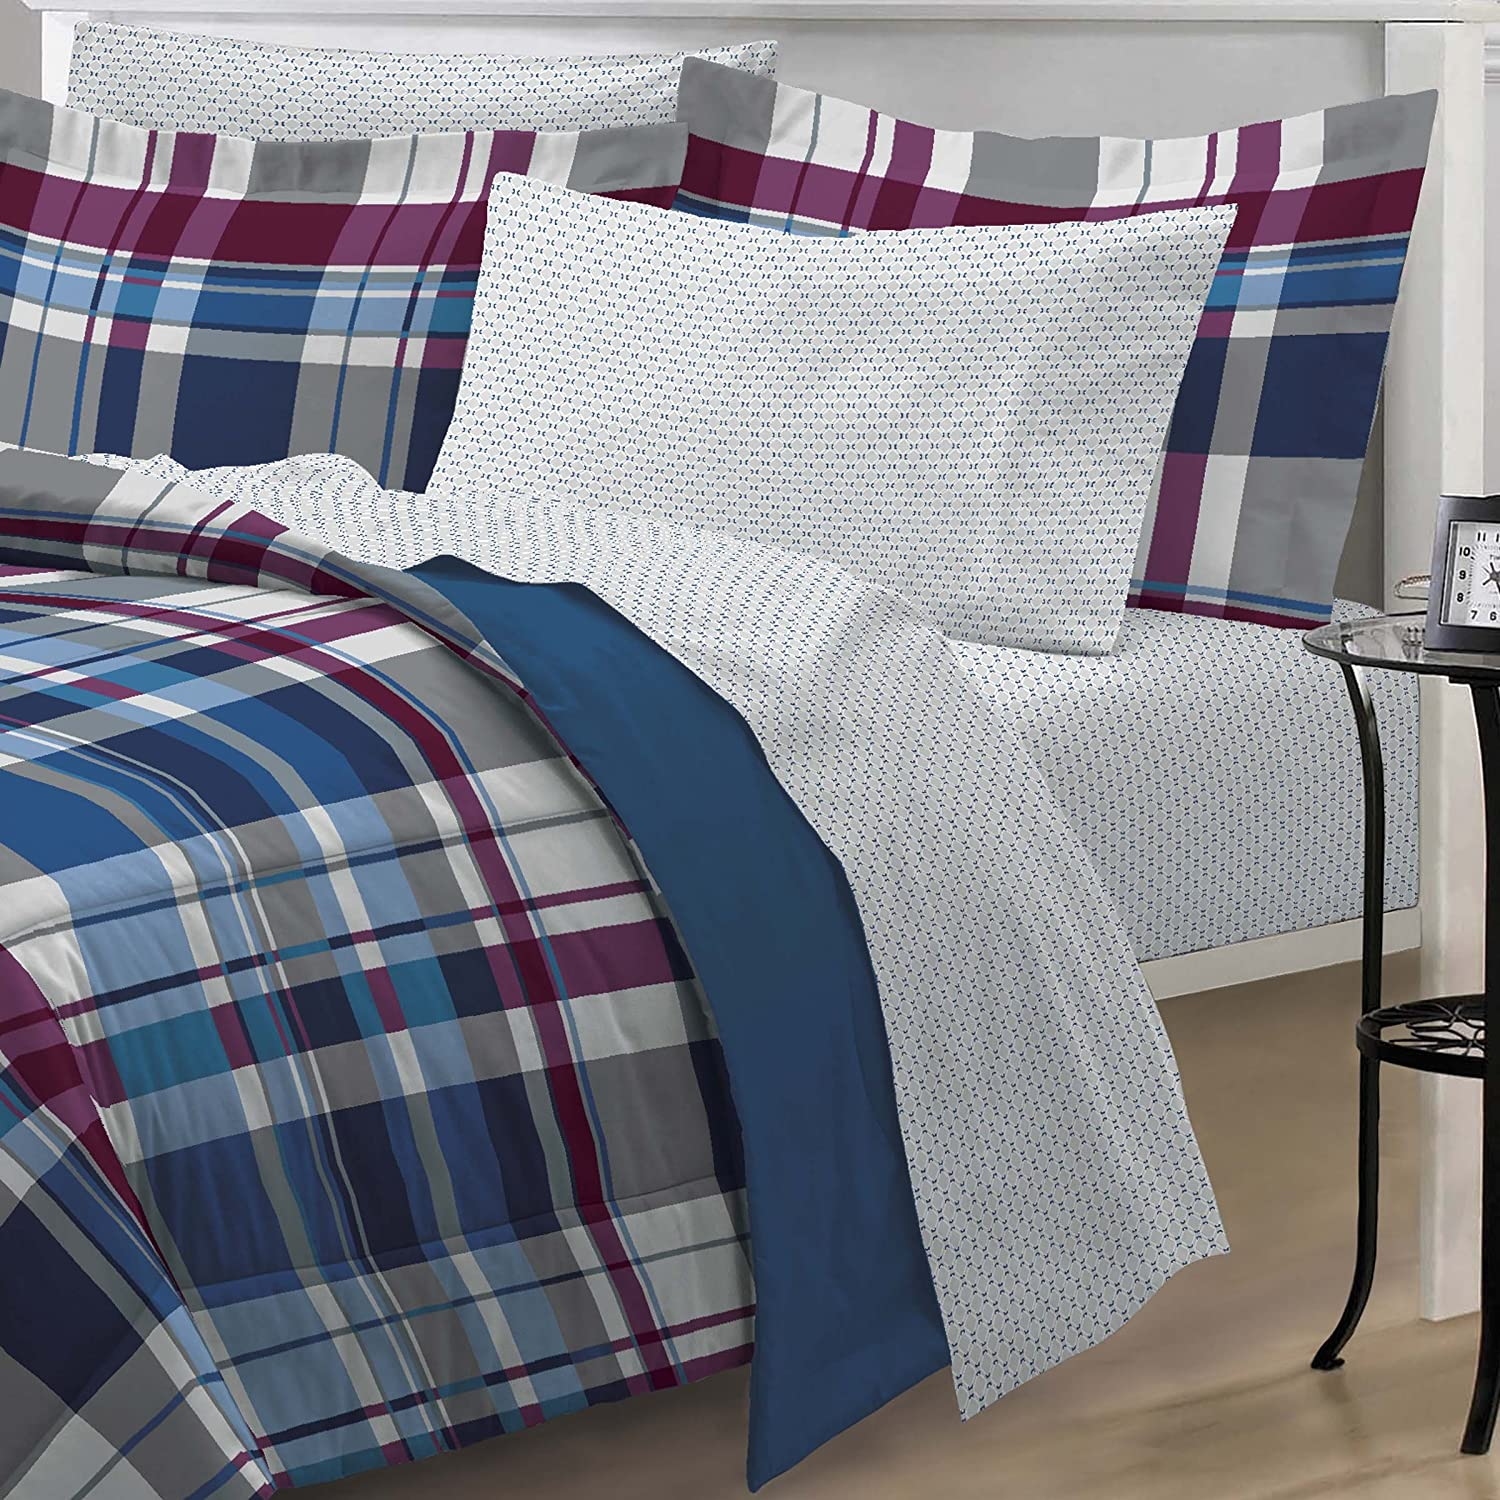 amazoncom my room varsity plaid ultra soft microfiber comforter bedding set twin home u0026 kitchen - Twin Bed Sheets